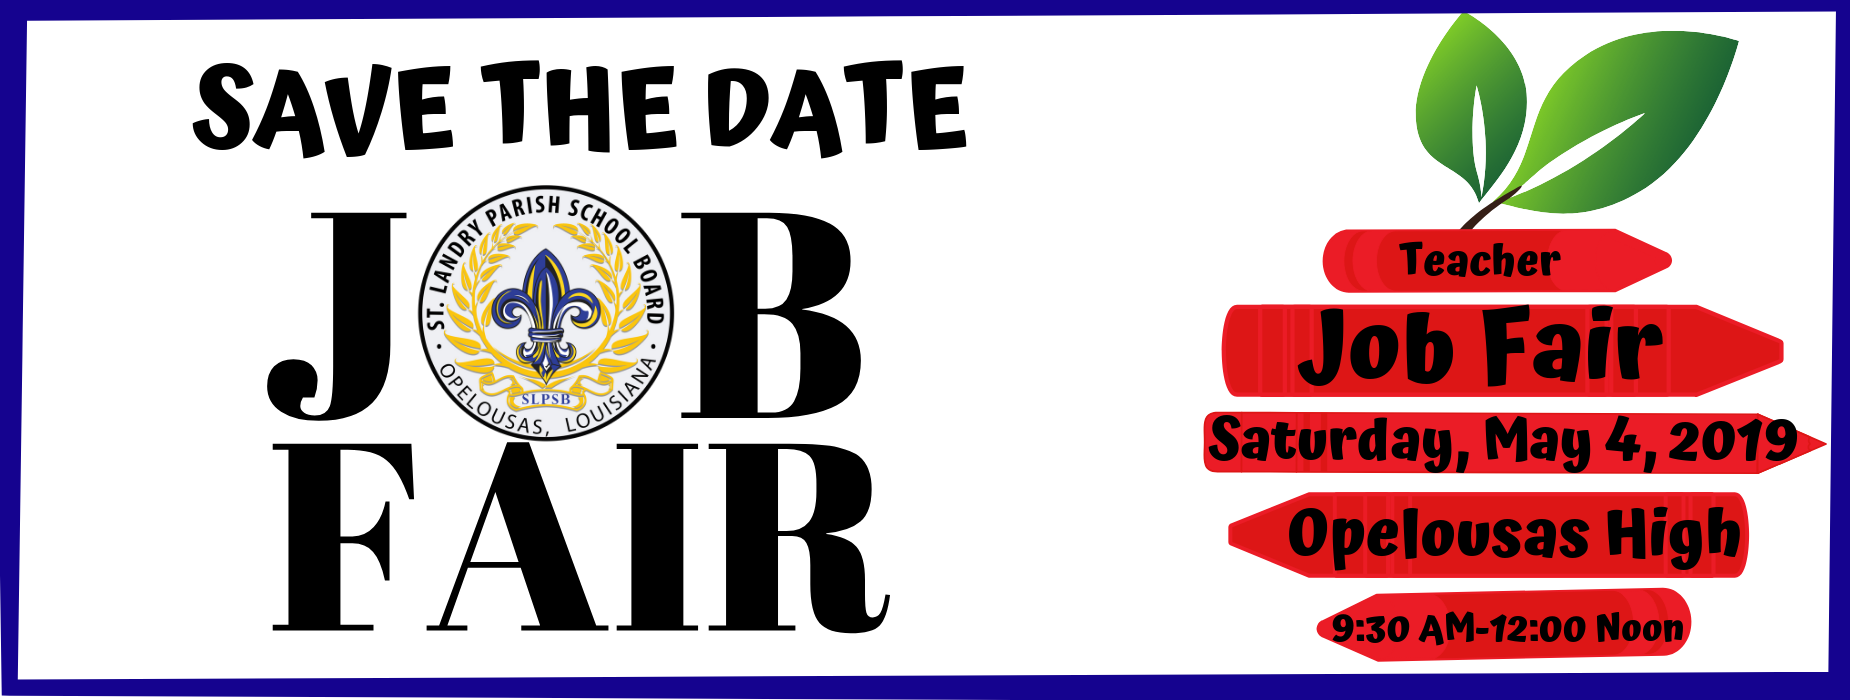 Save the date - teacher job fair saturday, may 4, 2019 at opelousas high from 9:30 am to 12 noon